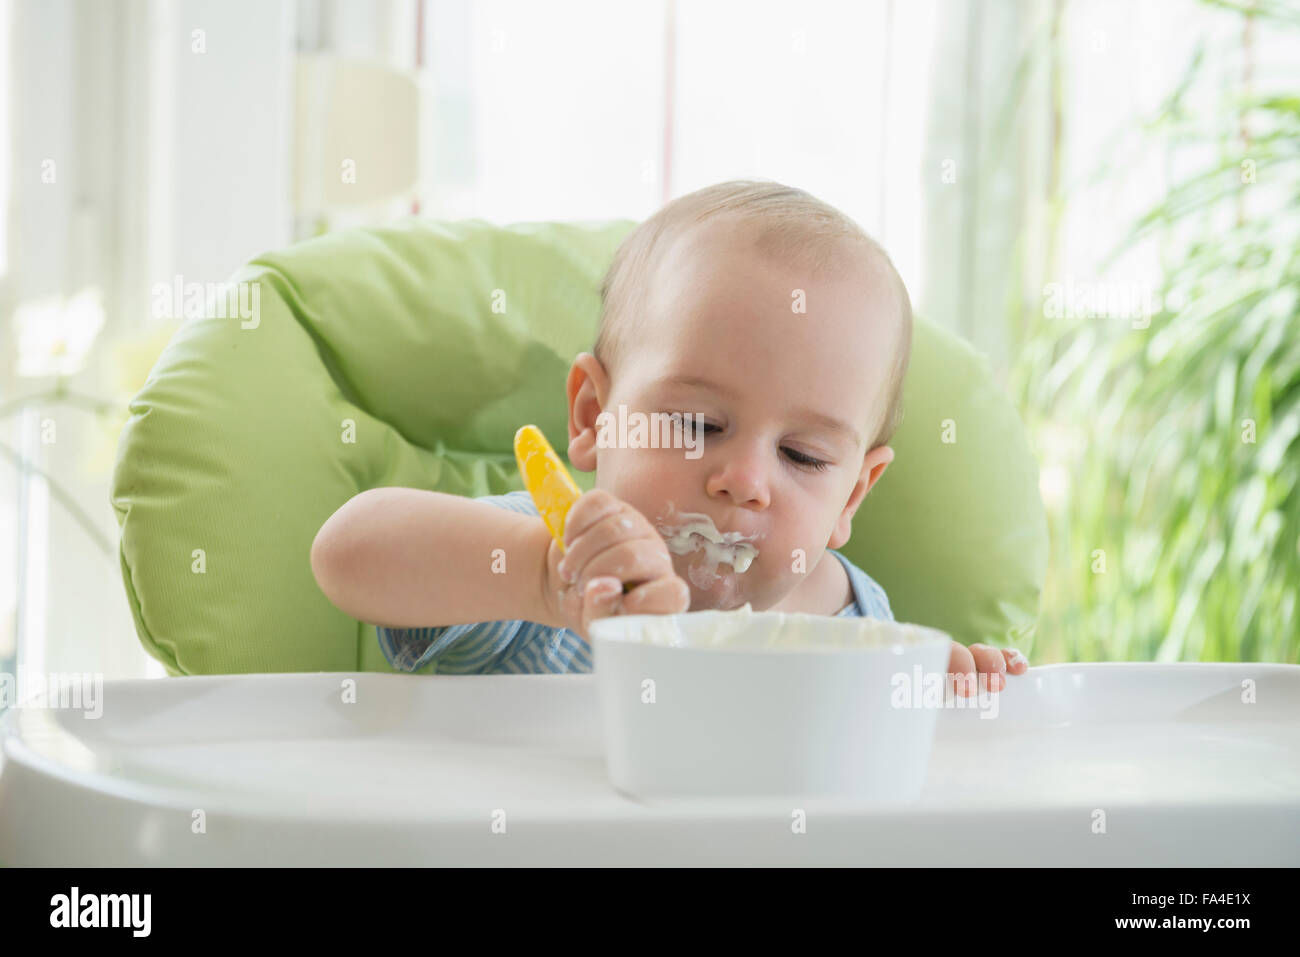 Baby Food Chair Messy Room Boy Stock Photos And Messy Room Boy Stock Images